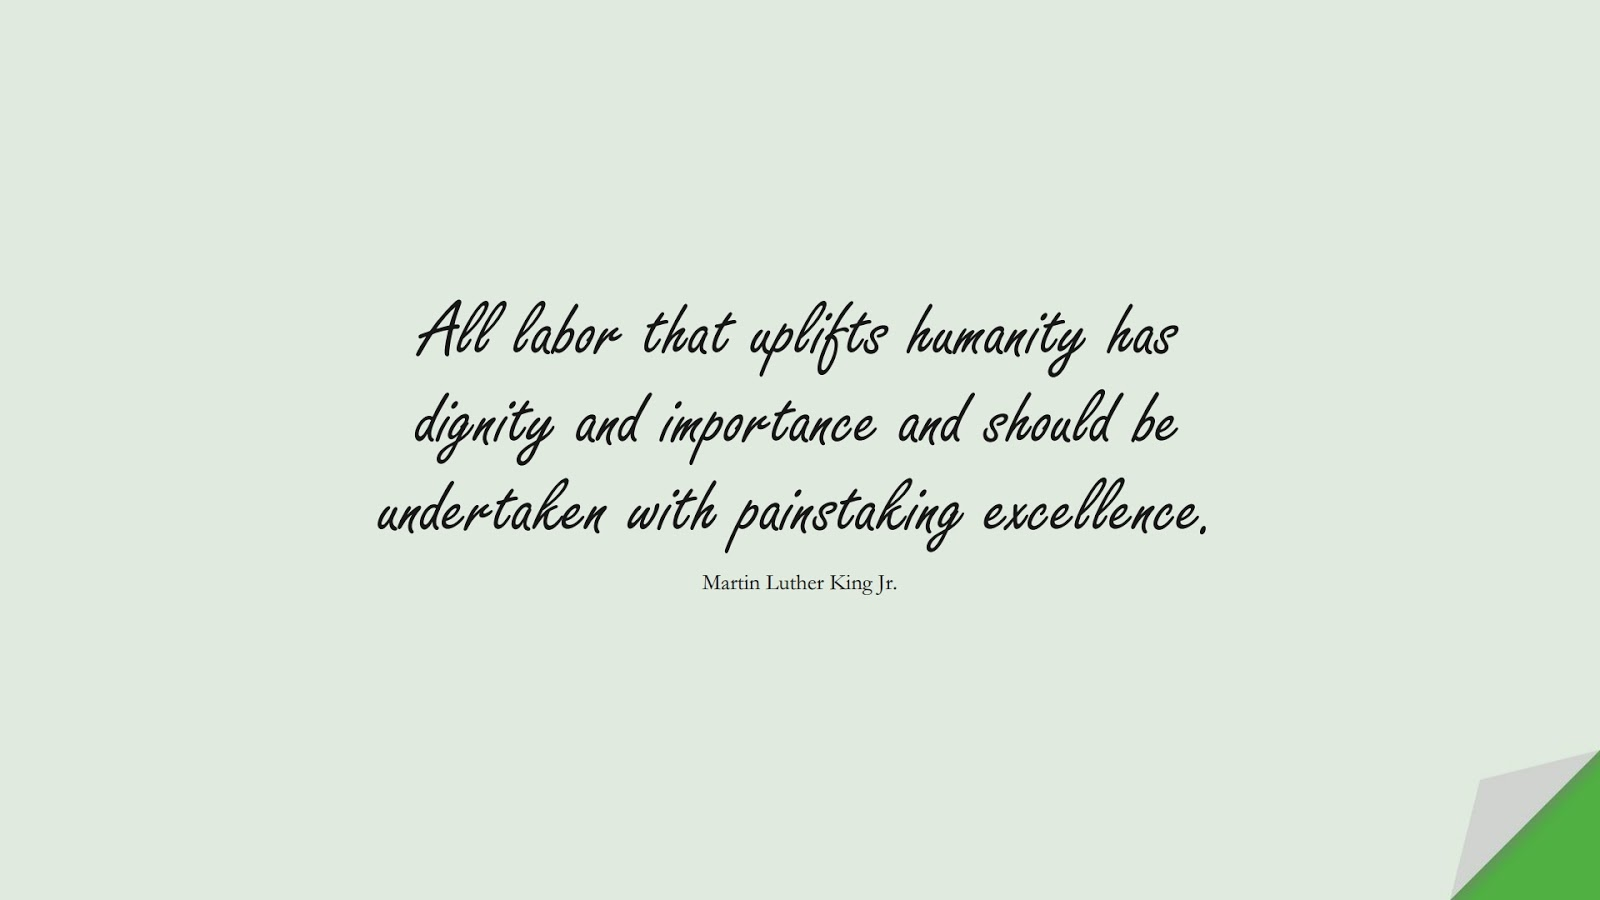 All labor that uplifts humanity has dignity and importance and should be undertaken with painstaking excellence. (Martin Luther King Jr.);  #HumanityQuotes